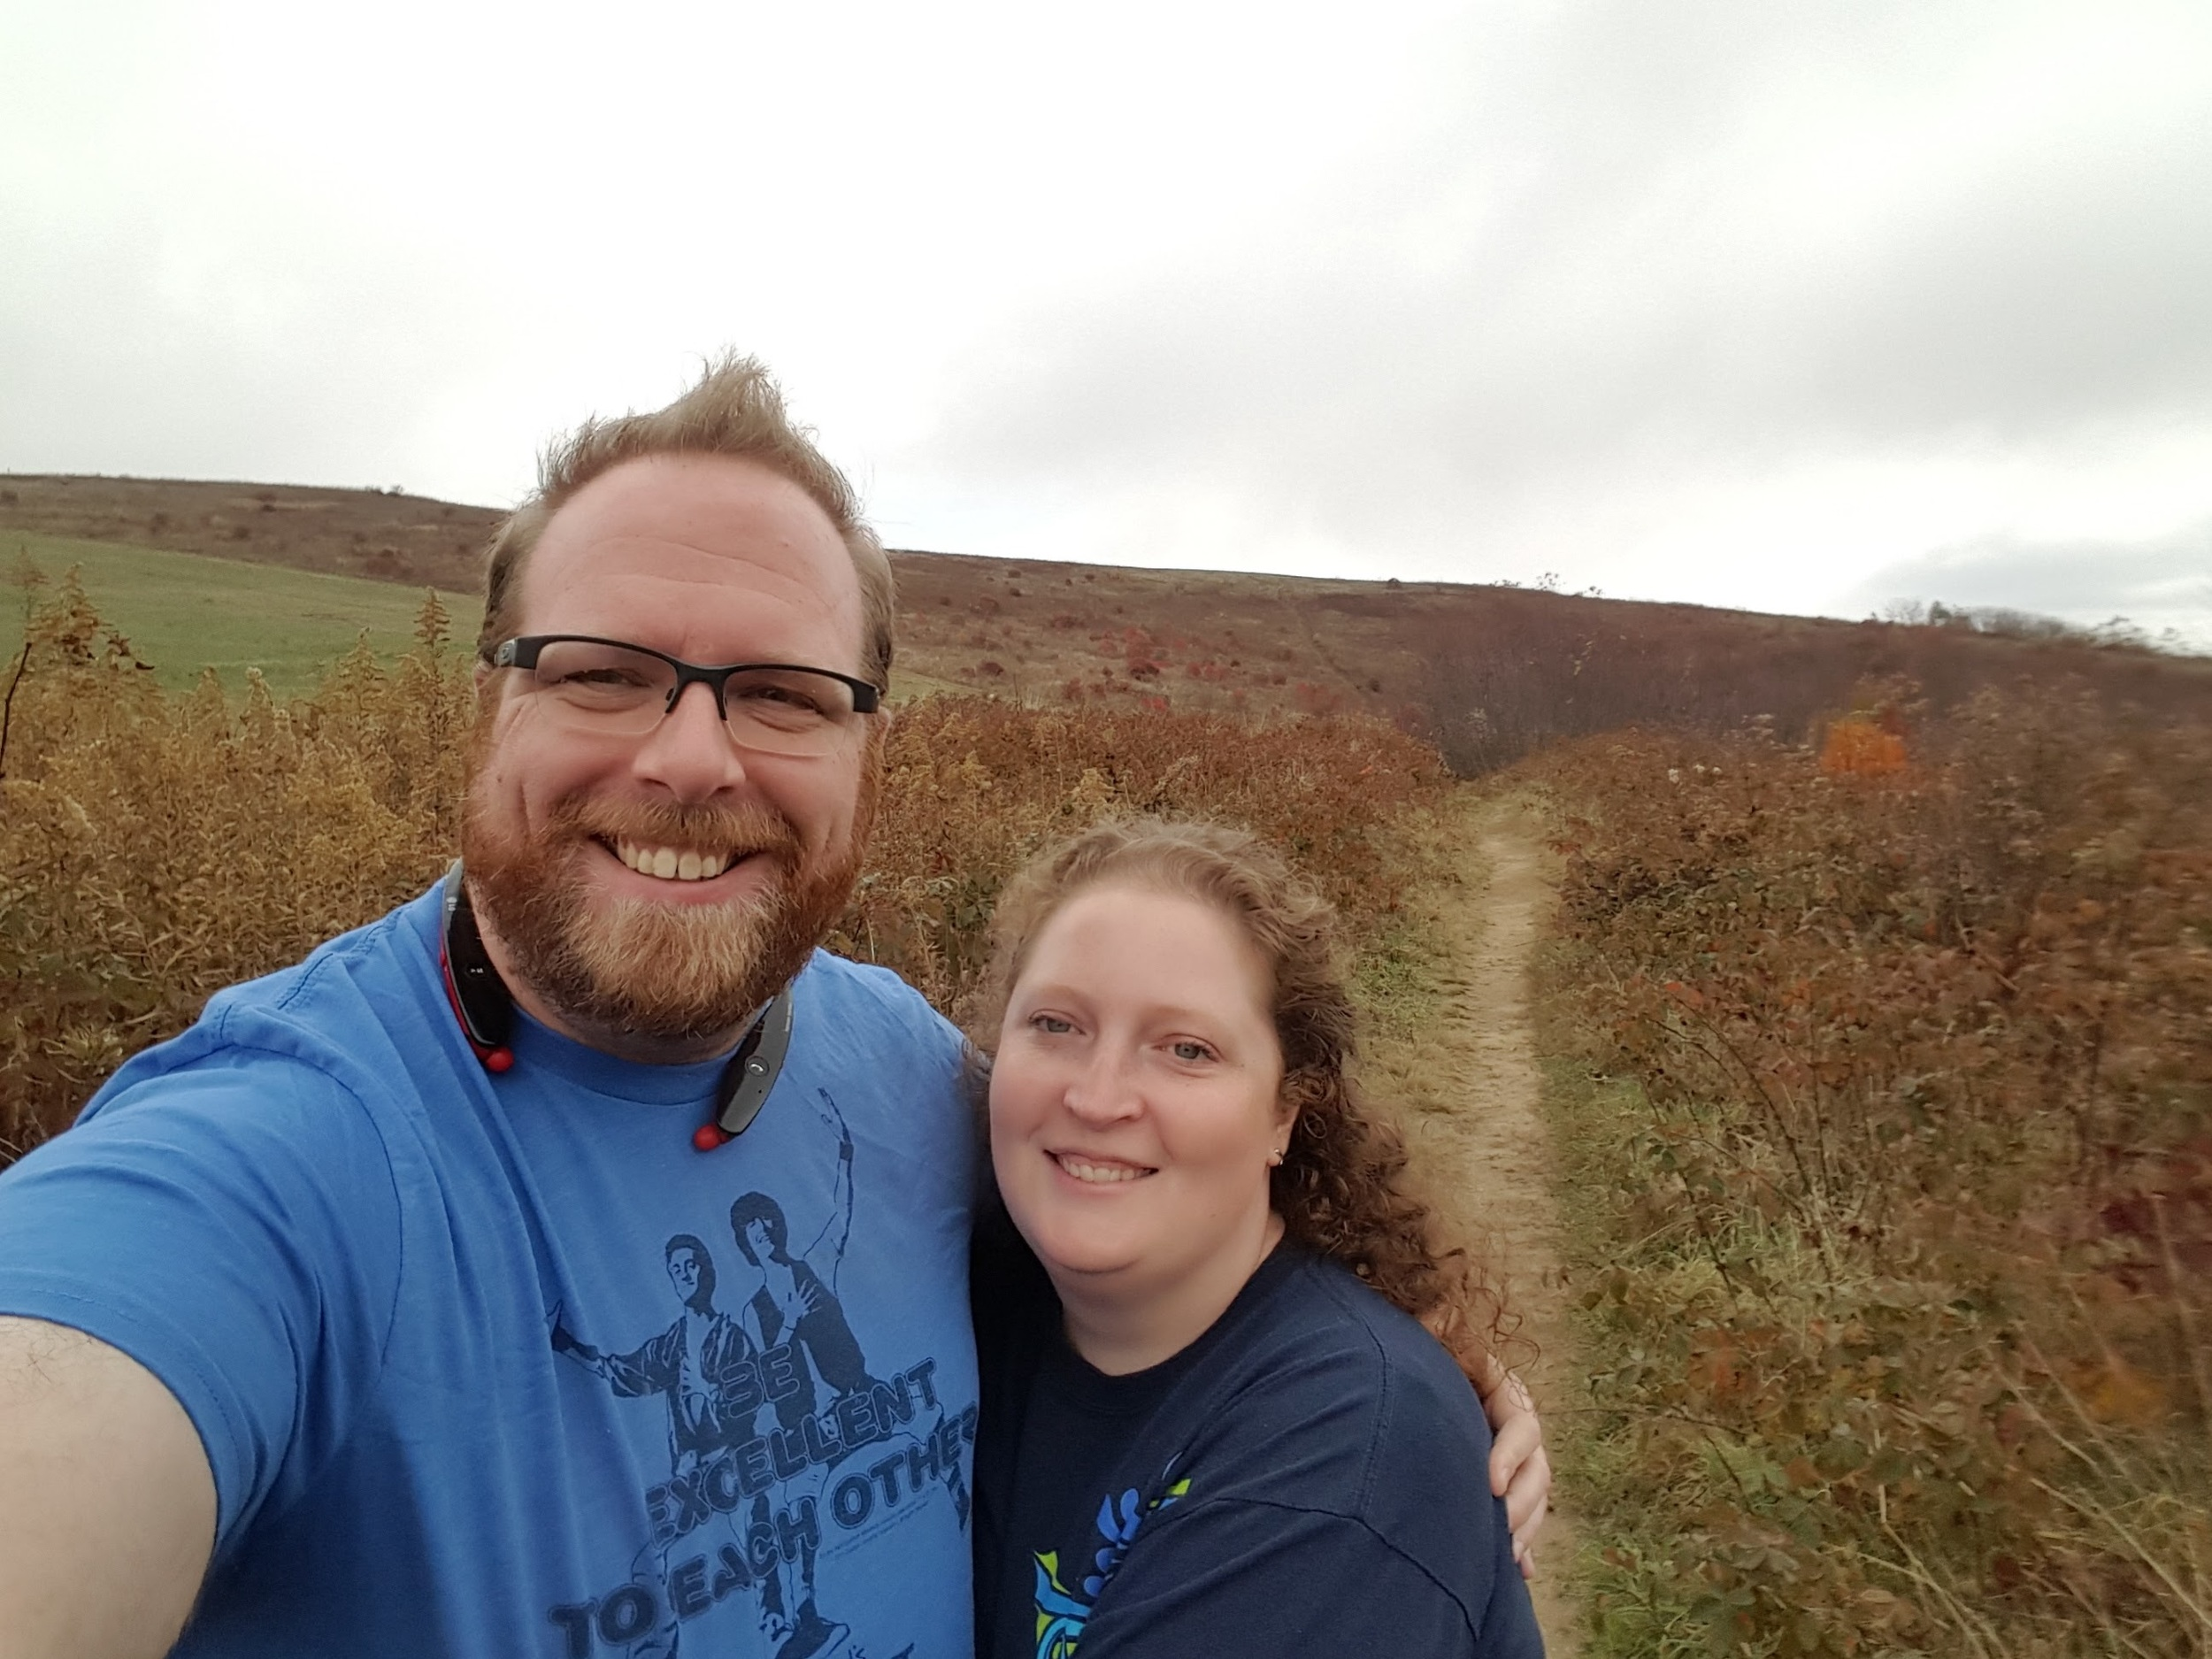 James and amber edwards in max patch, NC oCTOBER 2015